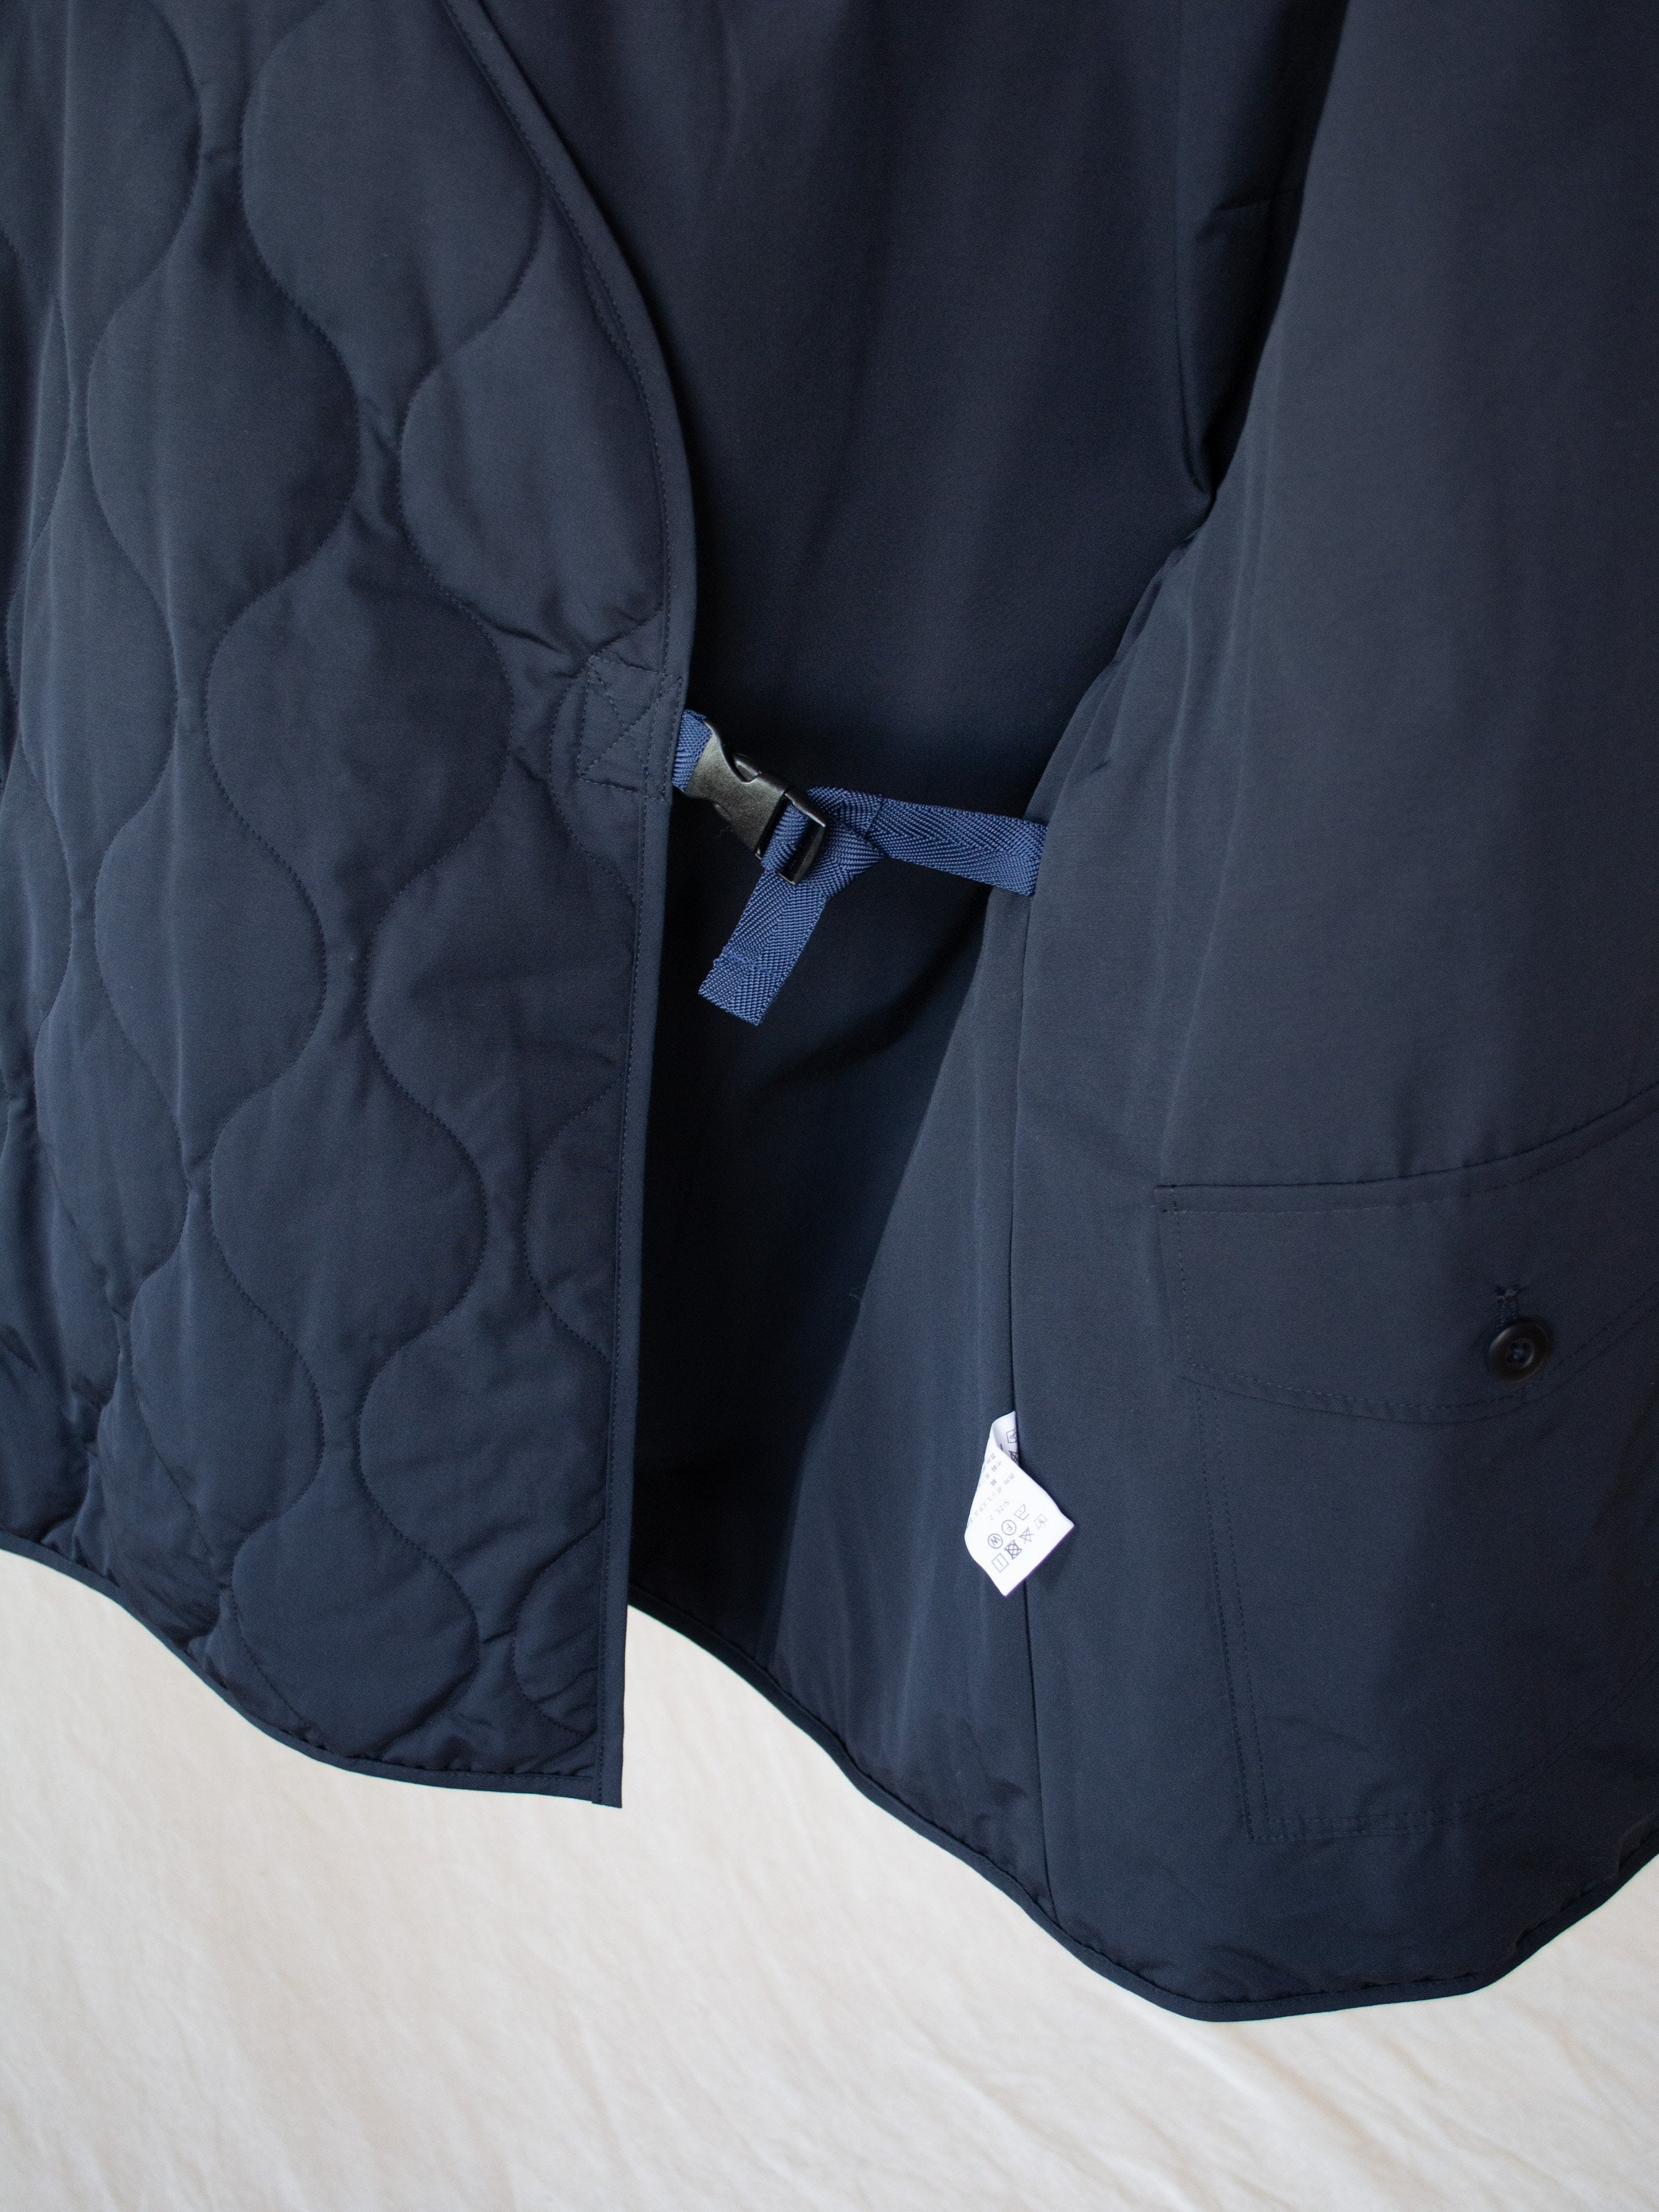 Namu Shop - ts(s) Quilted Liner Buckle Jacket - Navy